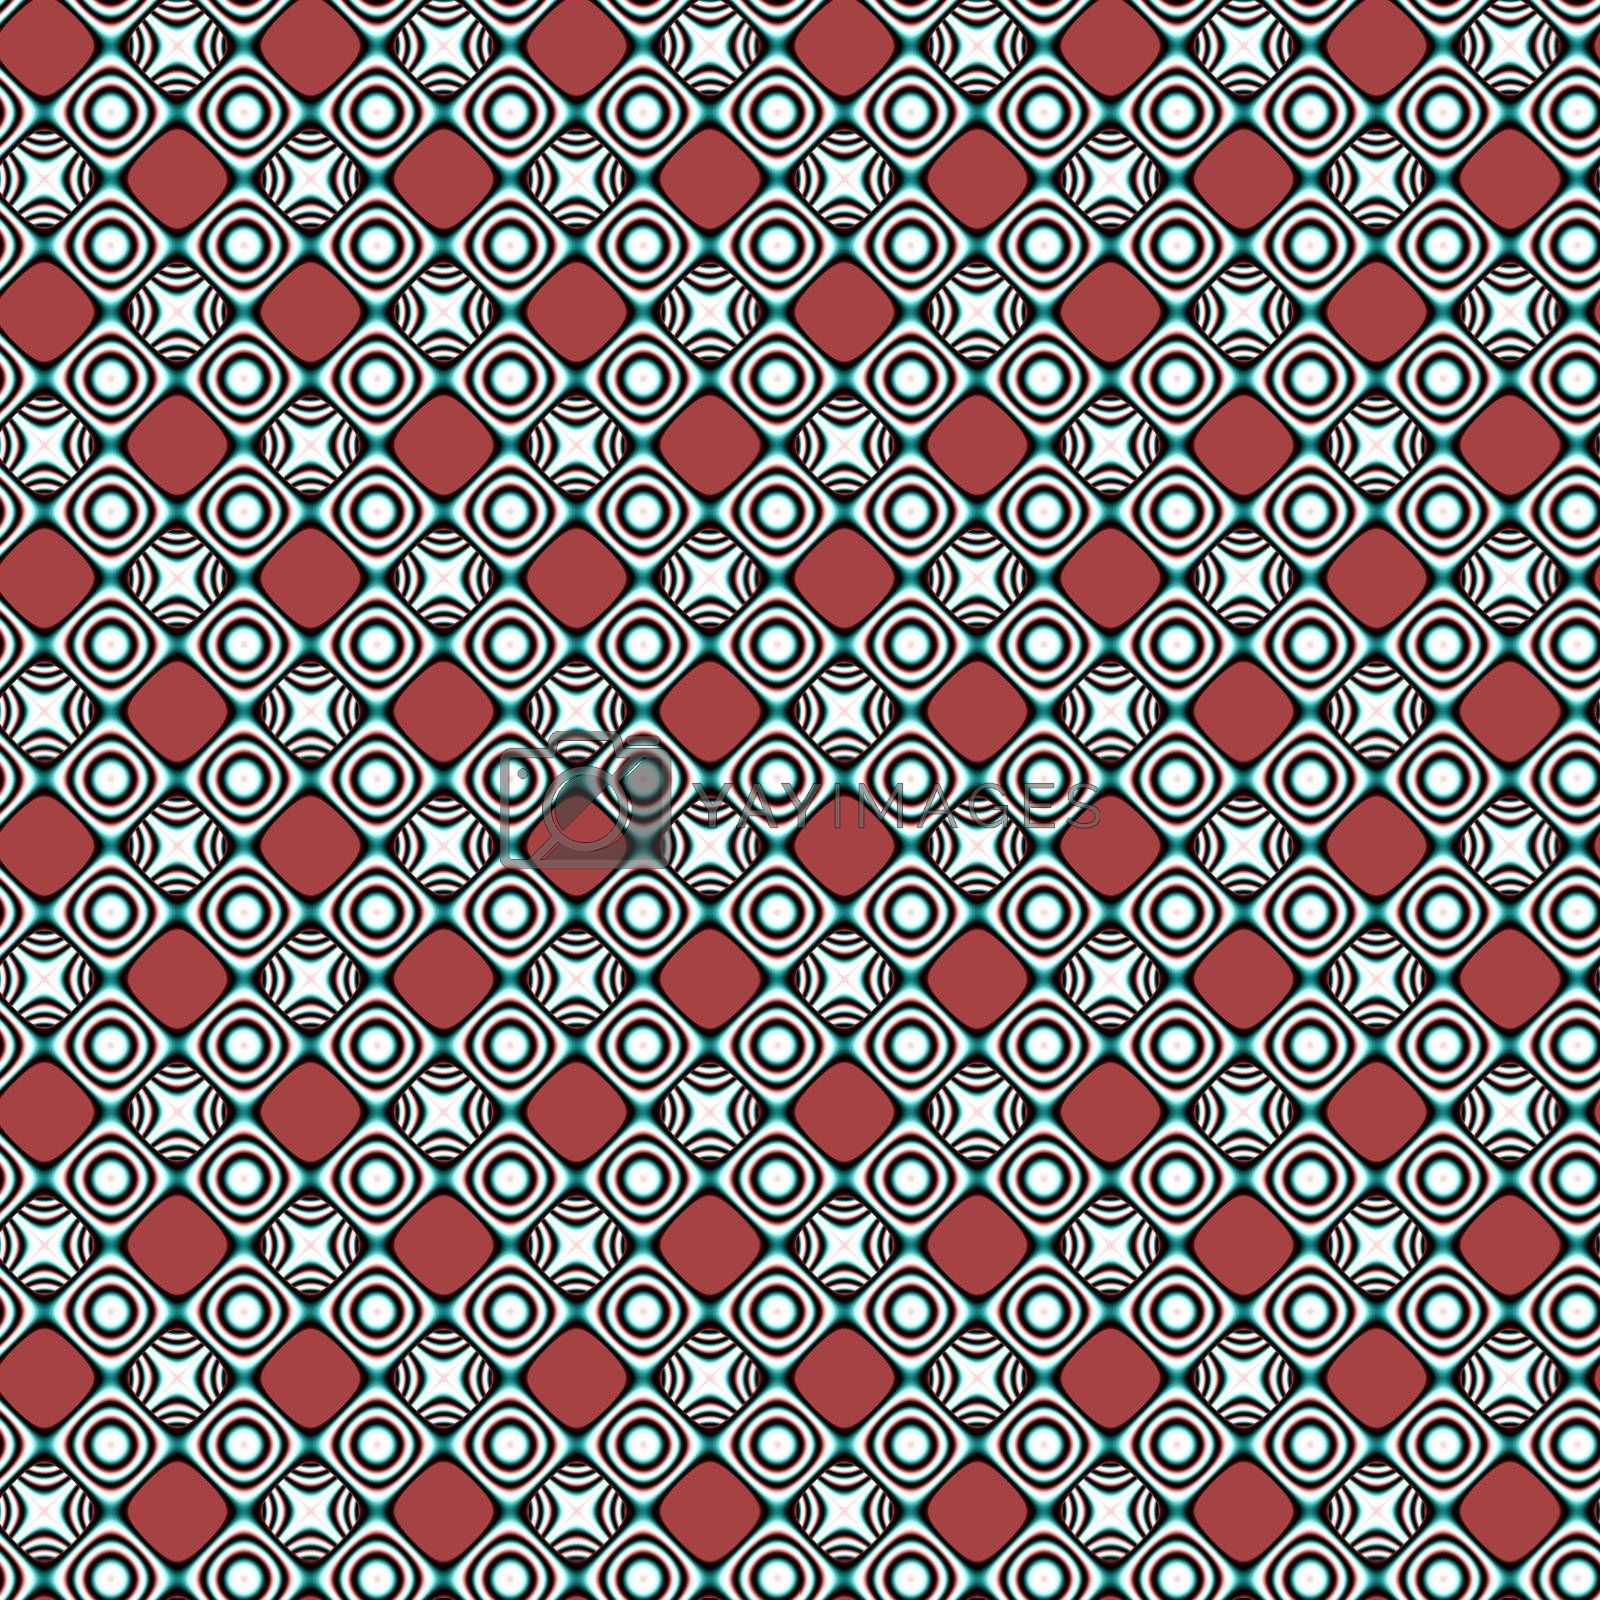 seamless tiling background with black-and-white ornaments on brown